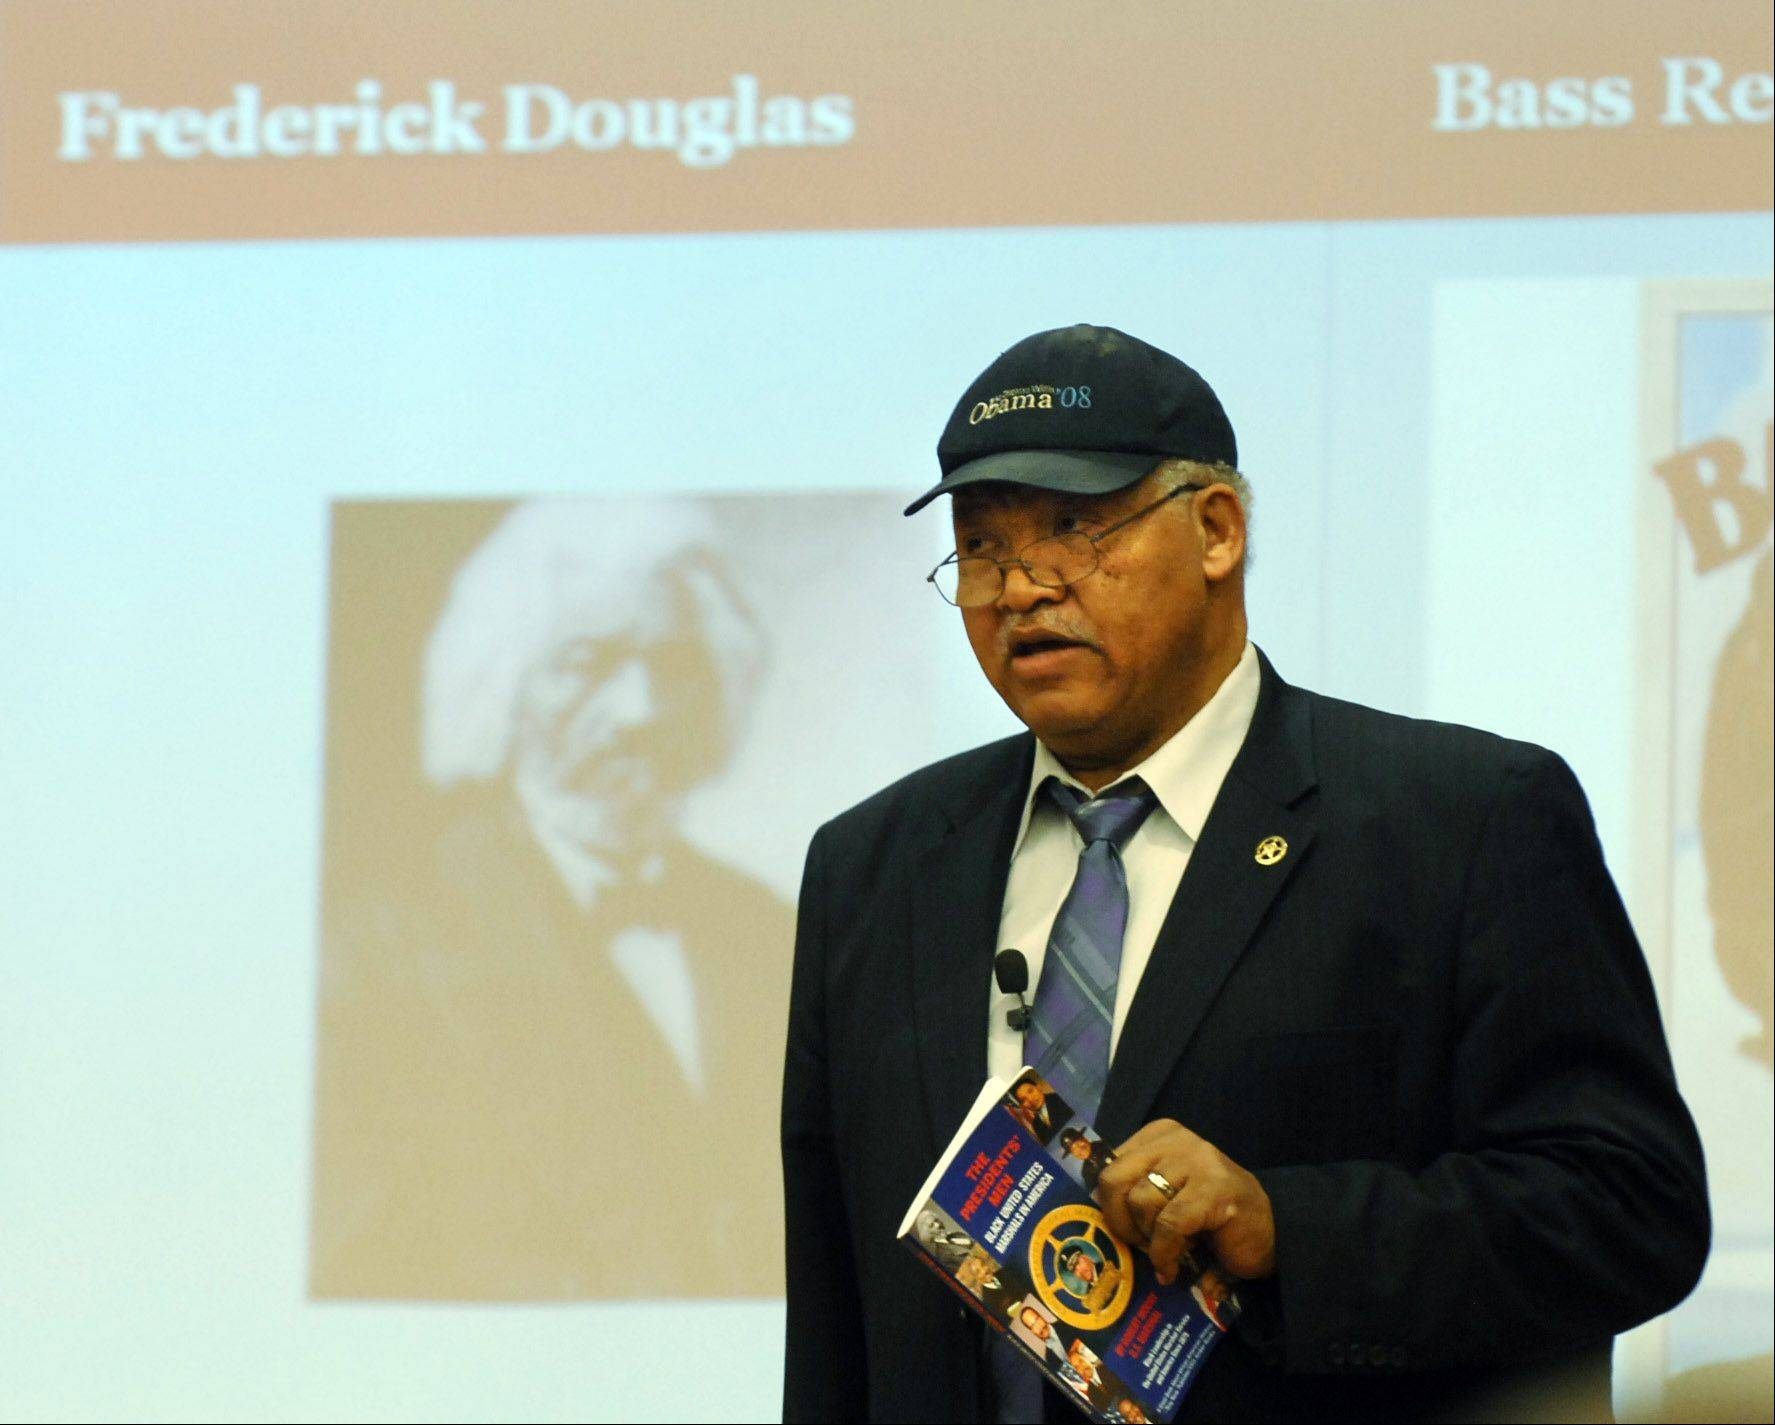 Robert Moore is one of only 68 African Americans appointed to be United States marshals since the position was created in 1789. He wrote a book about the contributions of black marshals after realizing they were overlooked in history texts. Moore holds a copy of his book during a speech Sunday at the Gail Borden Public Library in Elgin.